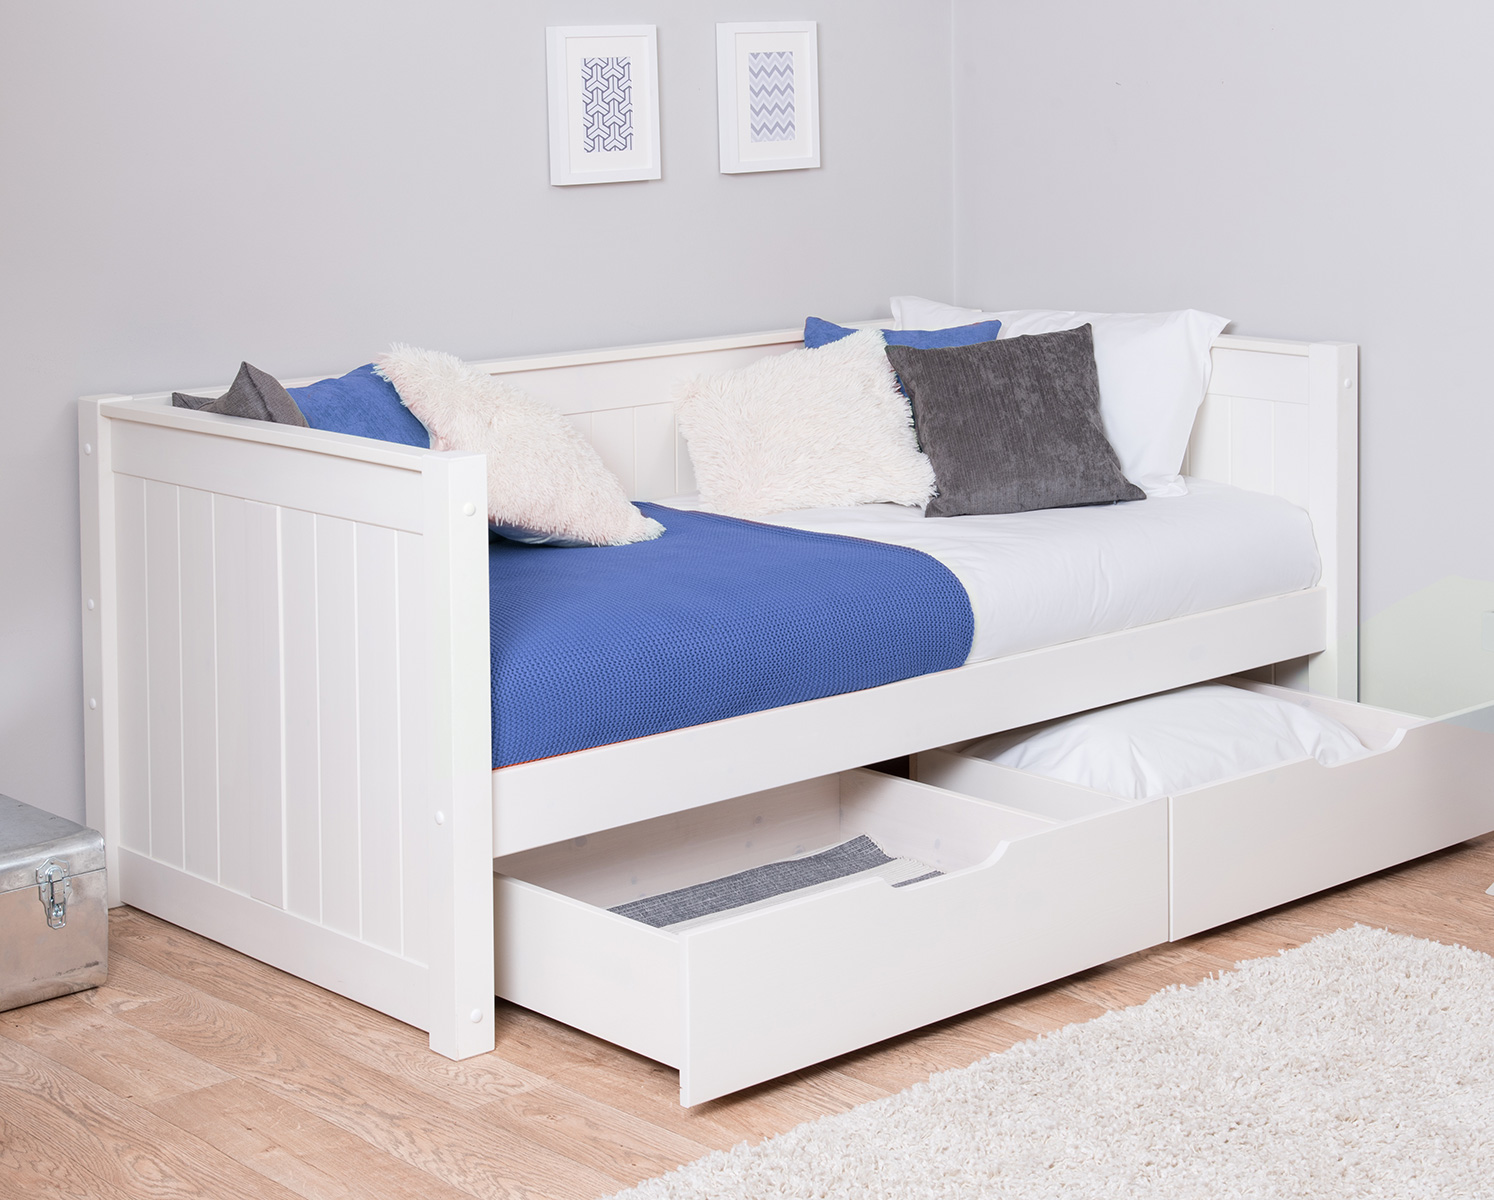 Classic Day Bed with Drawers by STOMPA for children & kids